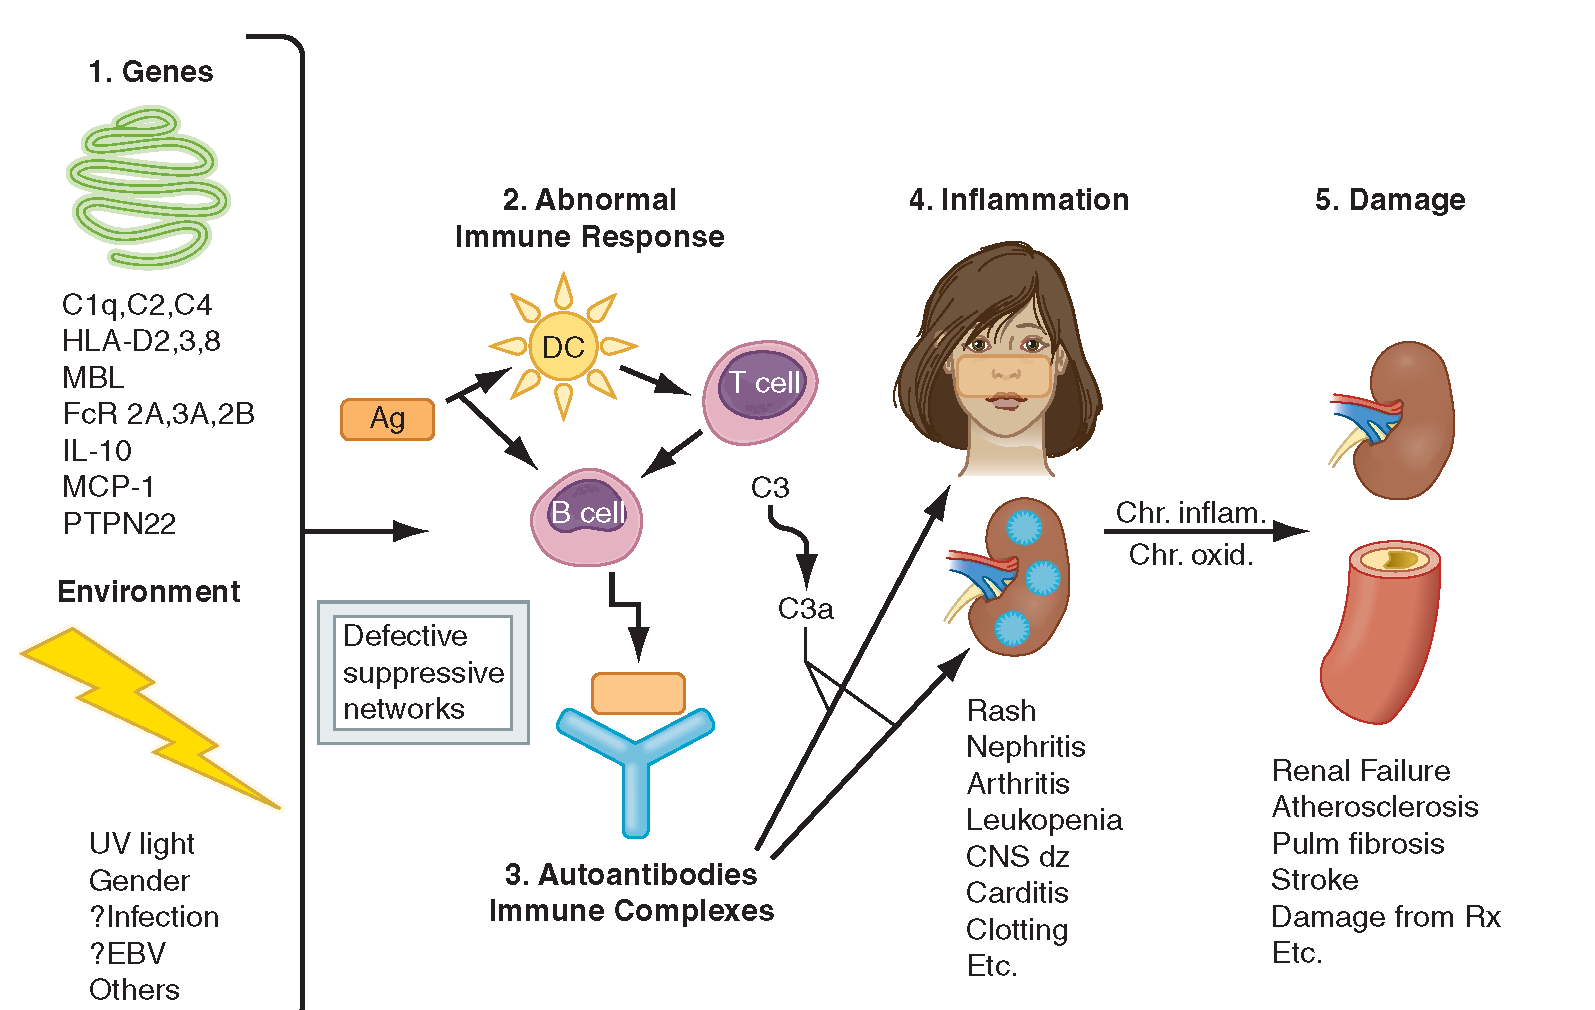 An overview of the pathophysiology behind systemic lupus erythematosus - SLE (Source: What when how)